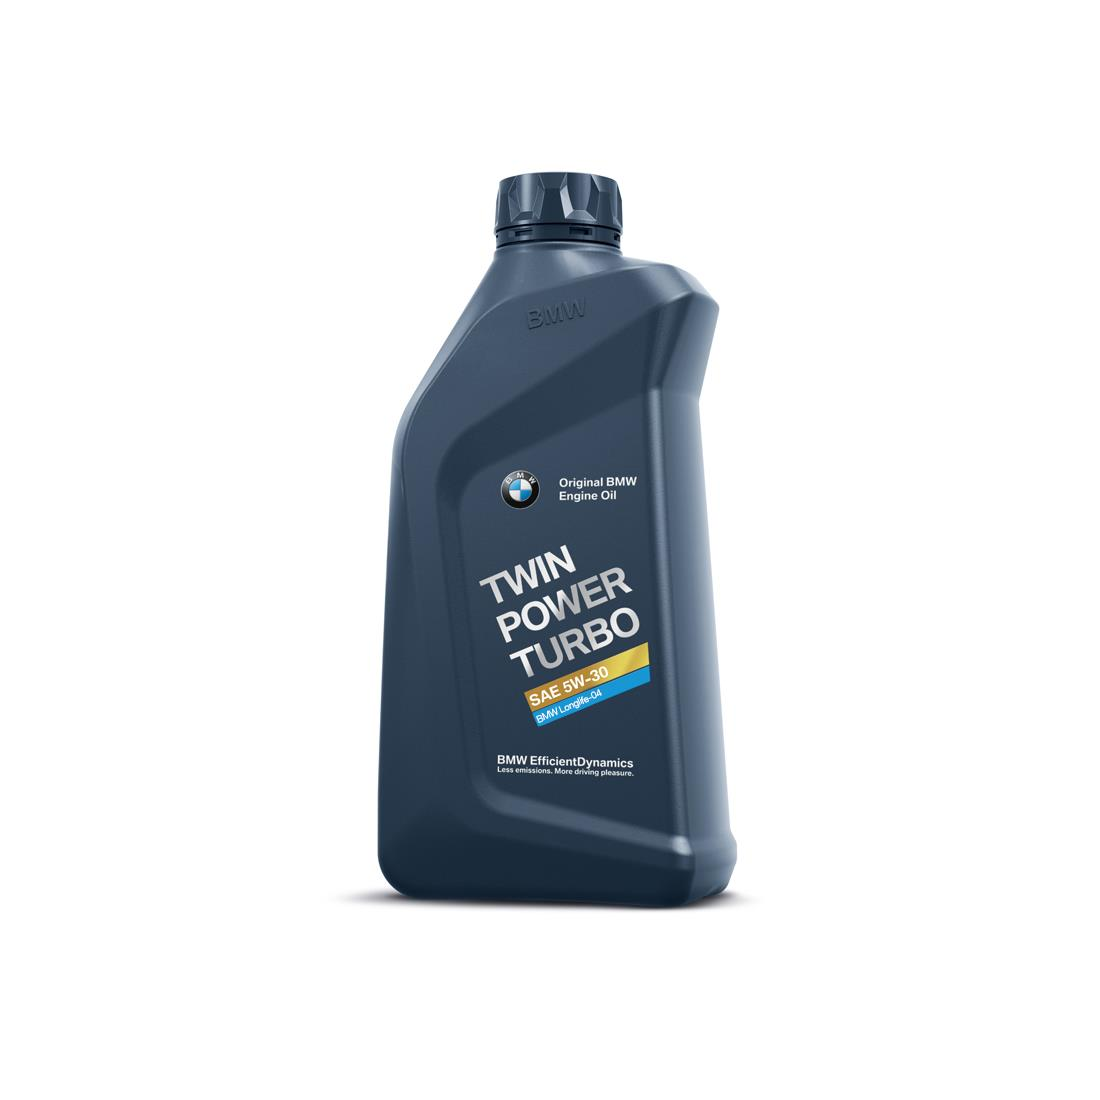 BMW TwinPower Turbo 5W-30 Engine Oil - 1 Liter